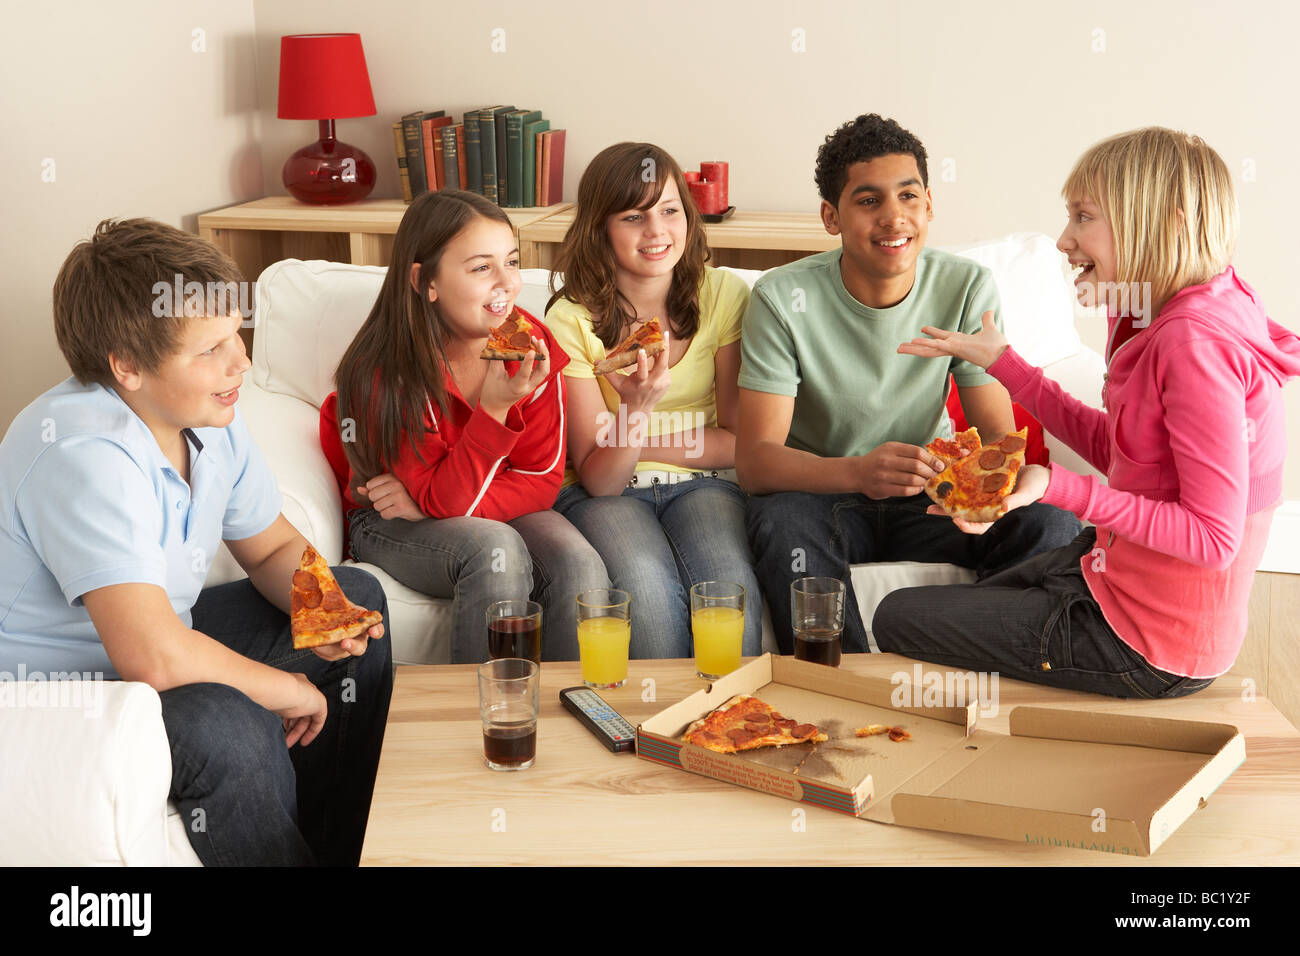 Group Of Children Eating Pizza At Home - Stock Image